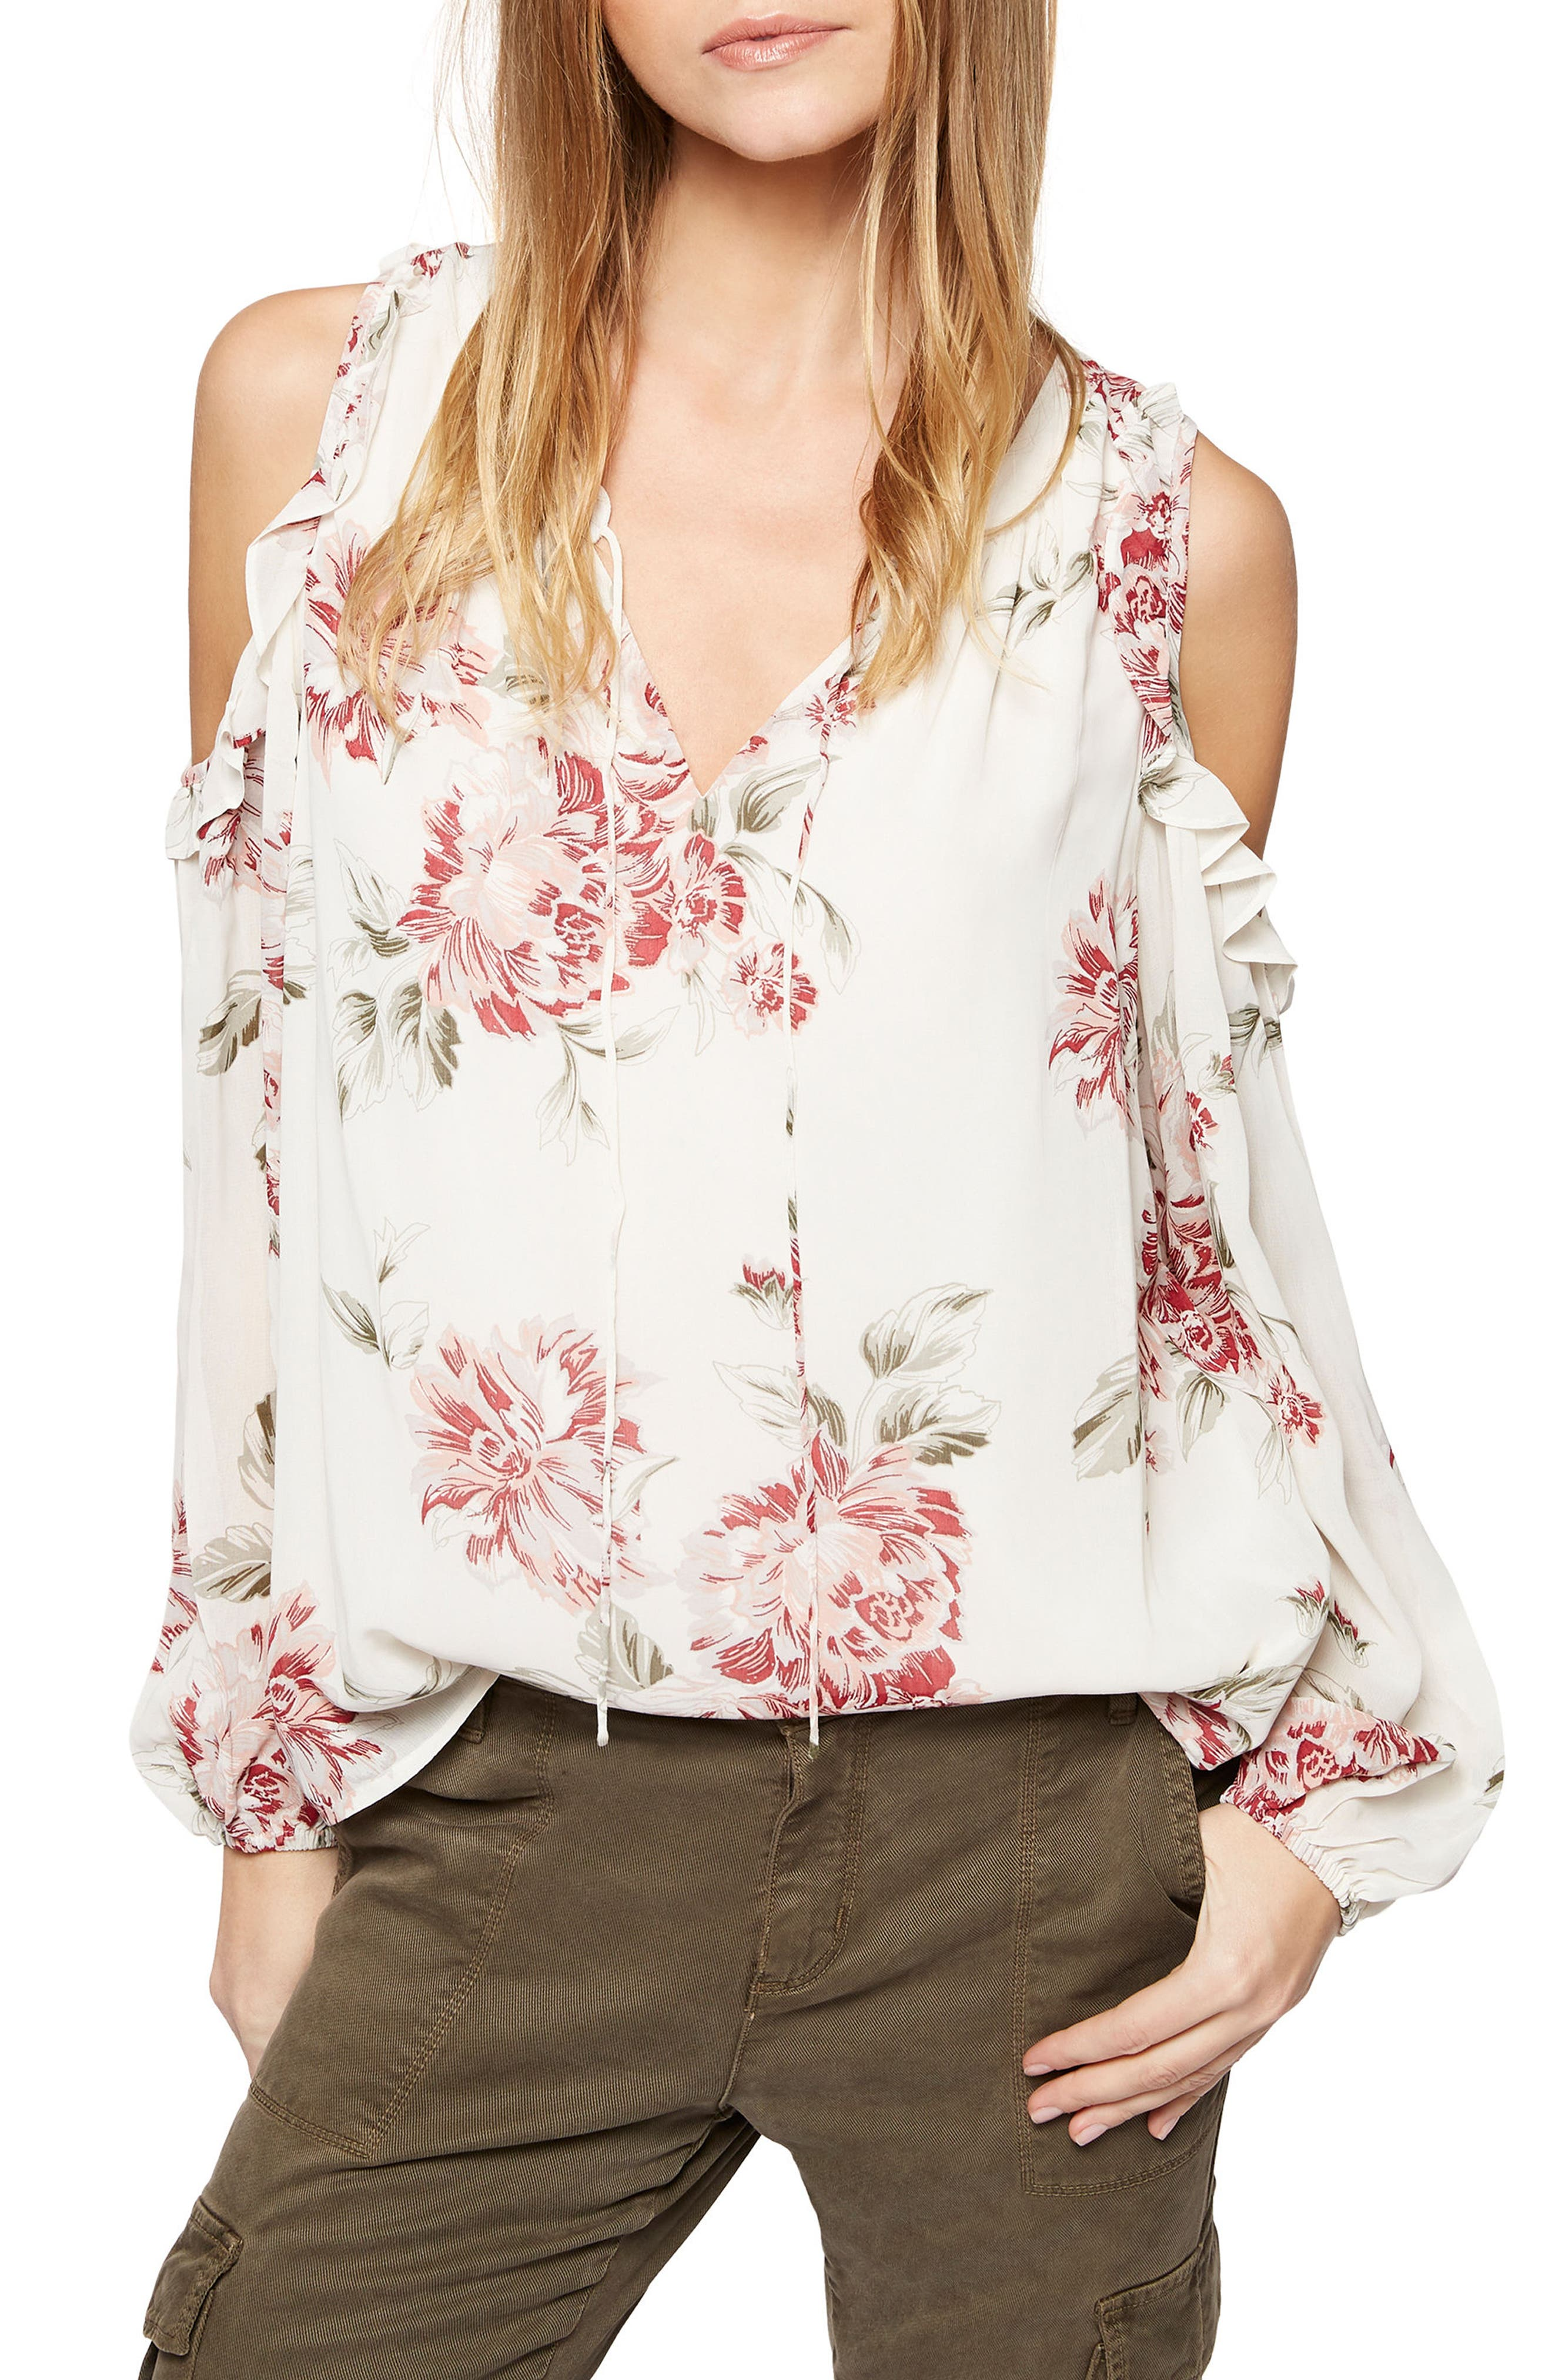 Alternate Image 1 Selected - Sanctuary Blaire Cold Shoulder Top (Regular & Petite)